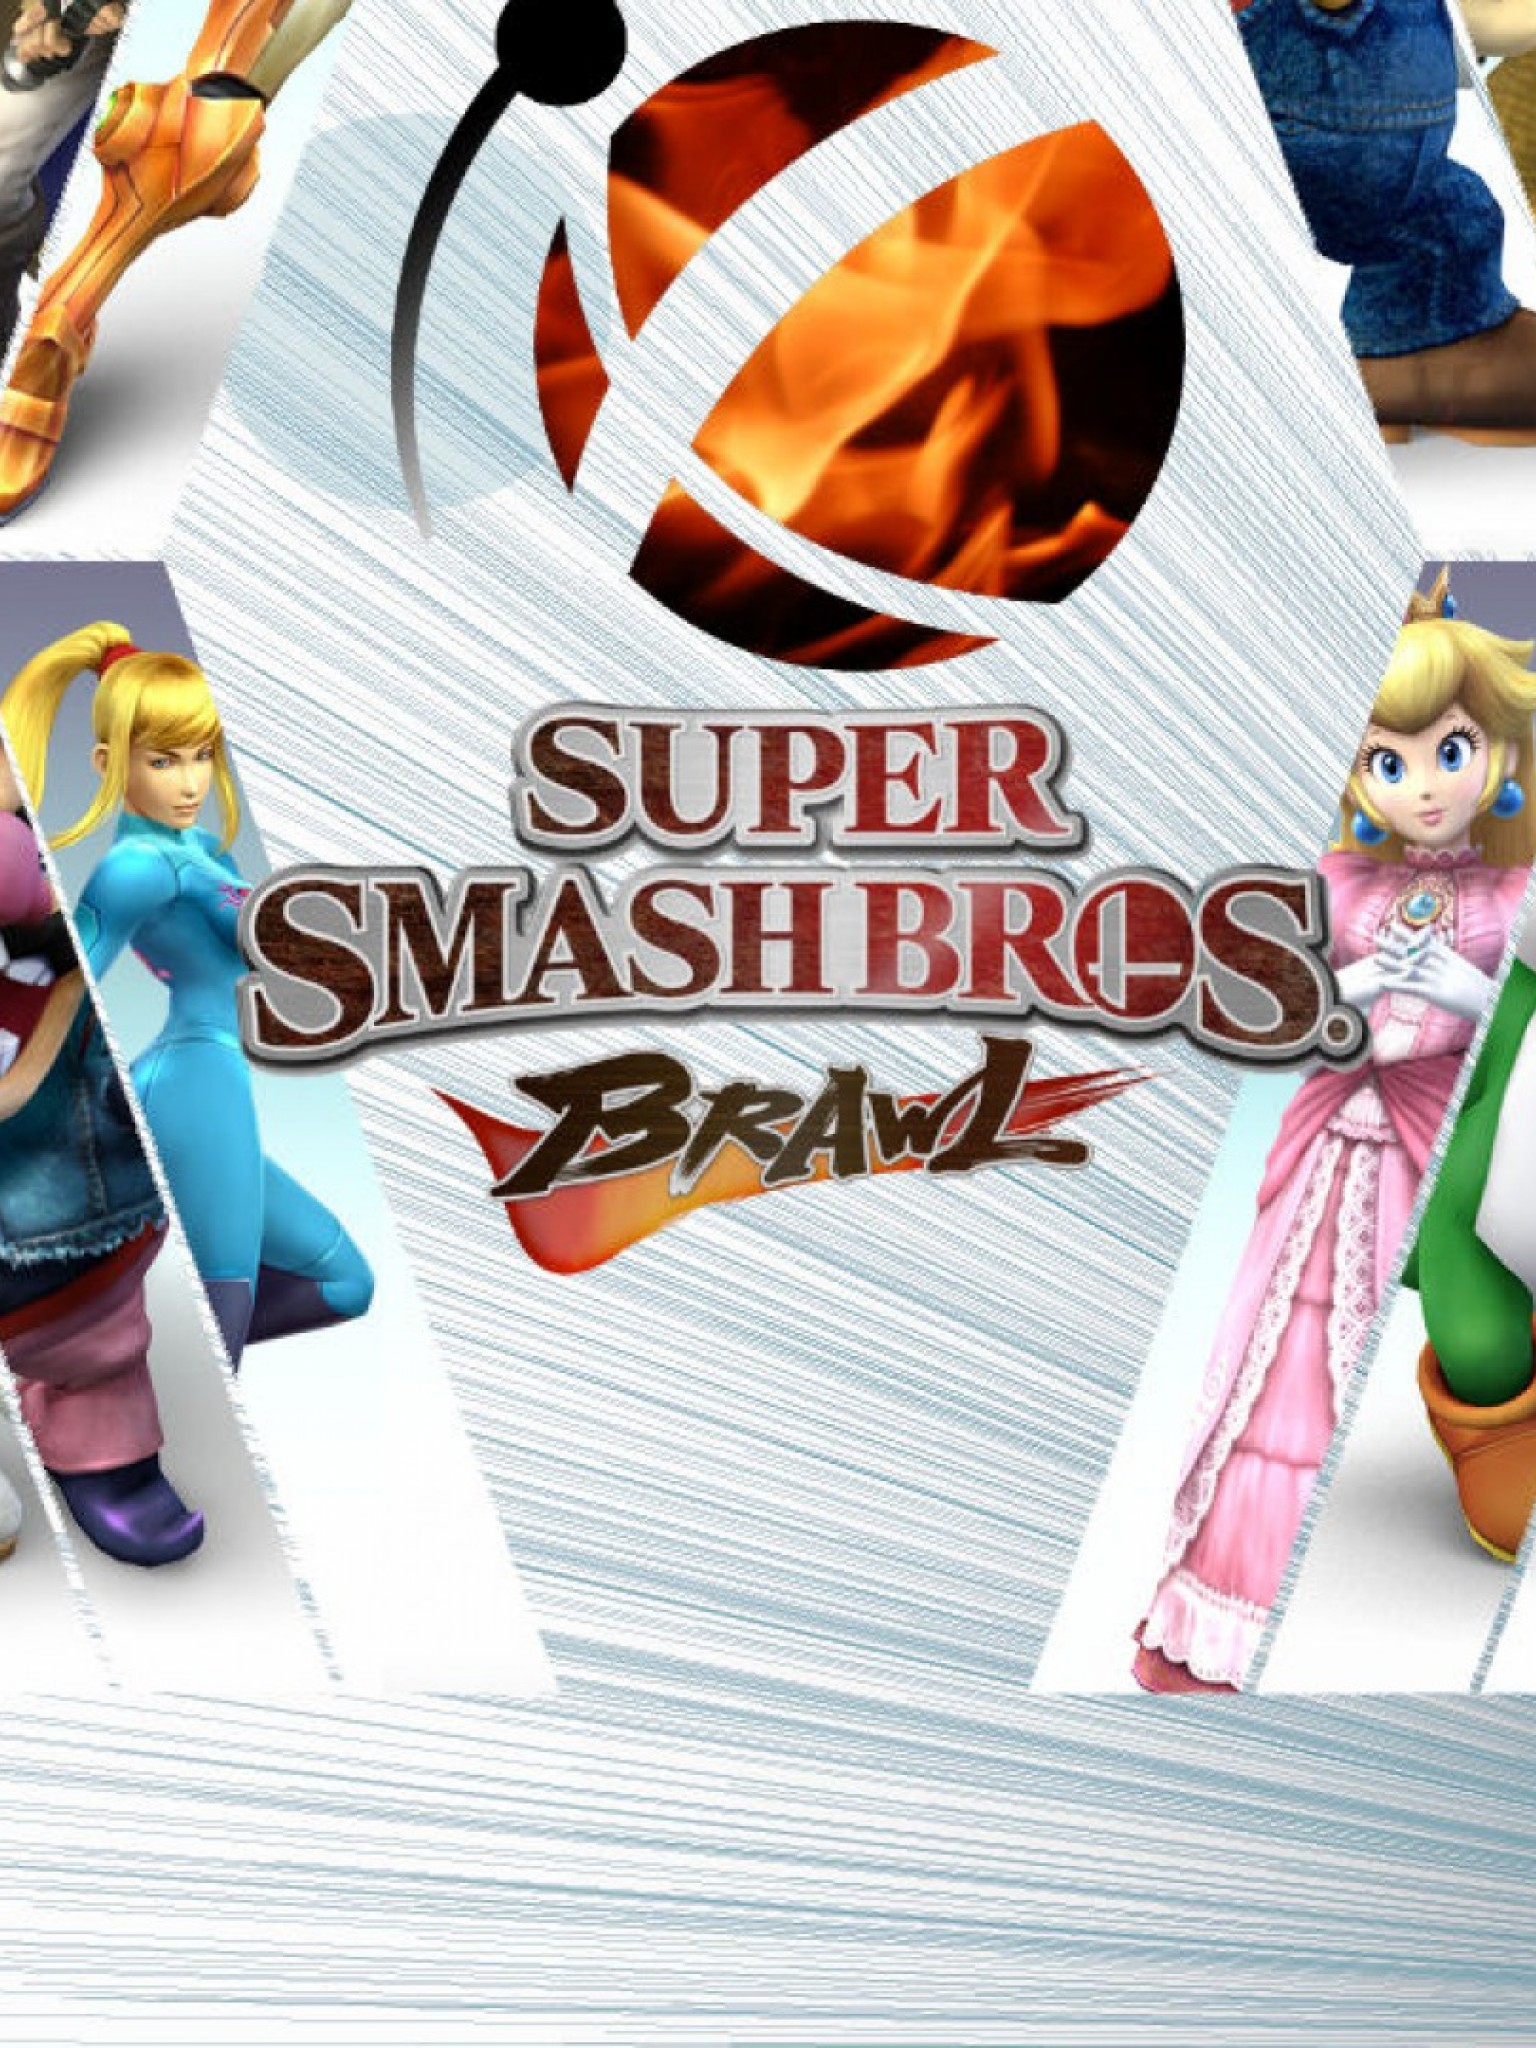 Super Smash Brothers Brawl Hd Wallpaper Retina Ipad Hd Wallpaper